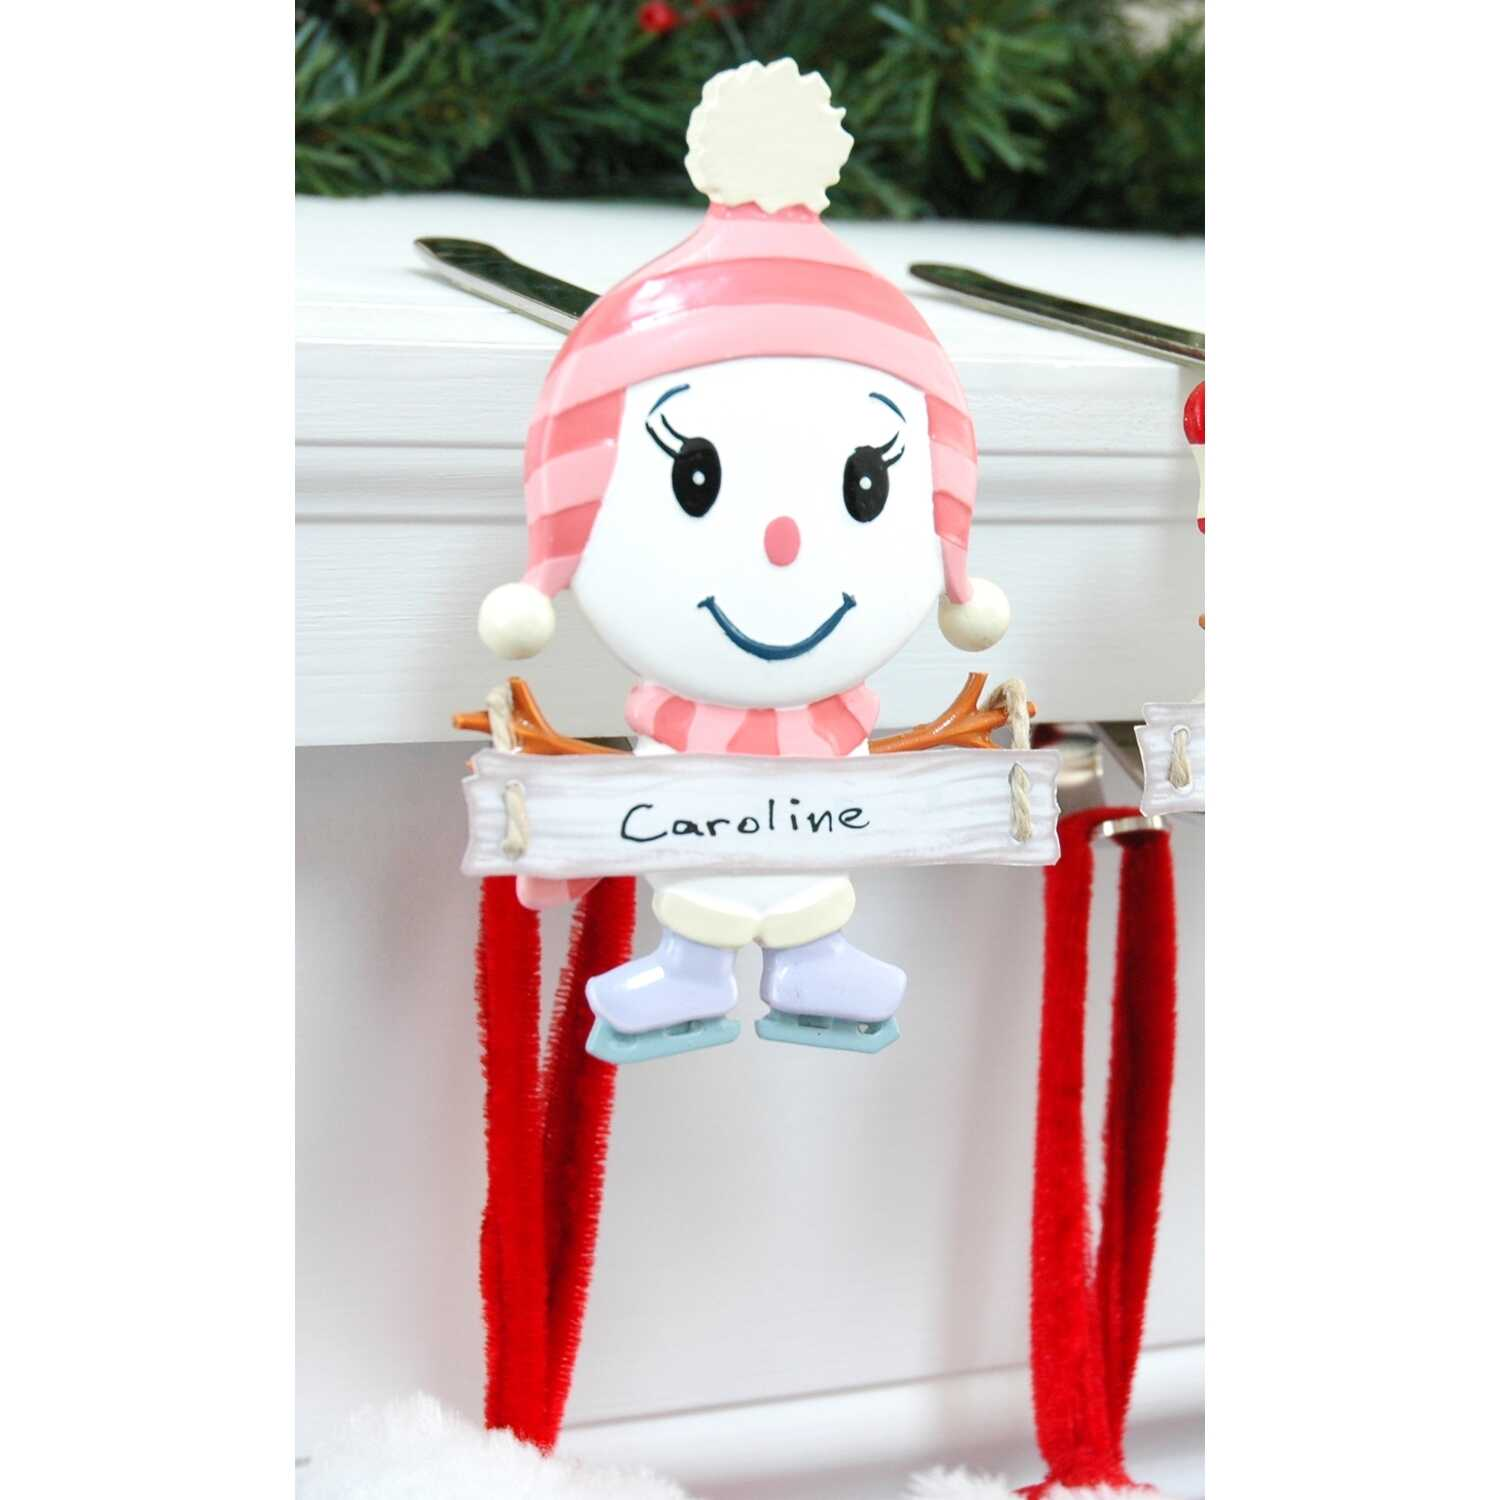 The Original MantleClip  Snowman Daughter  Pink/White  1 each Mantle Clips  Porcelain